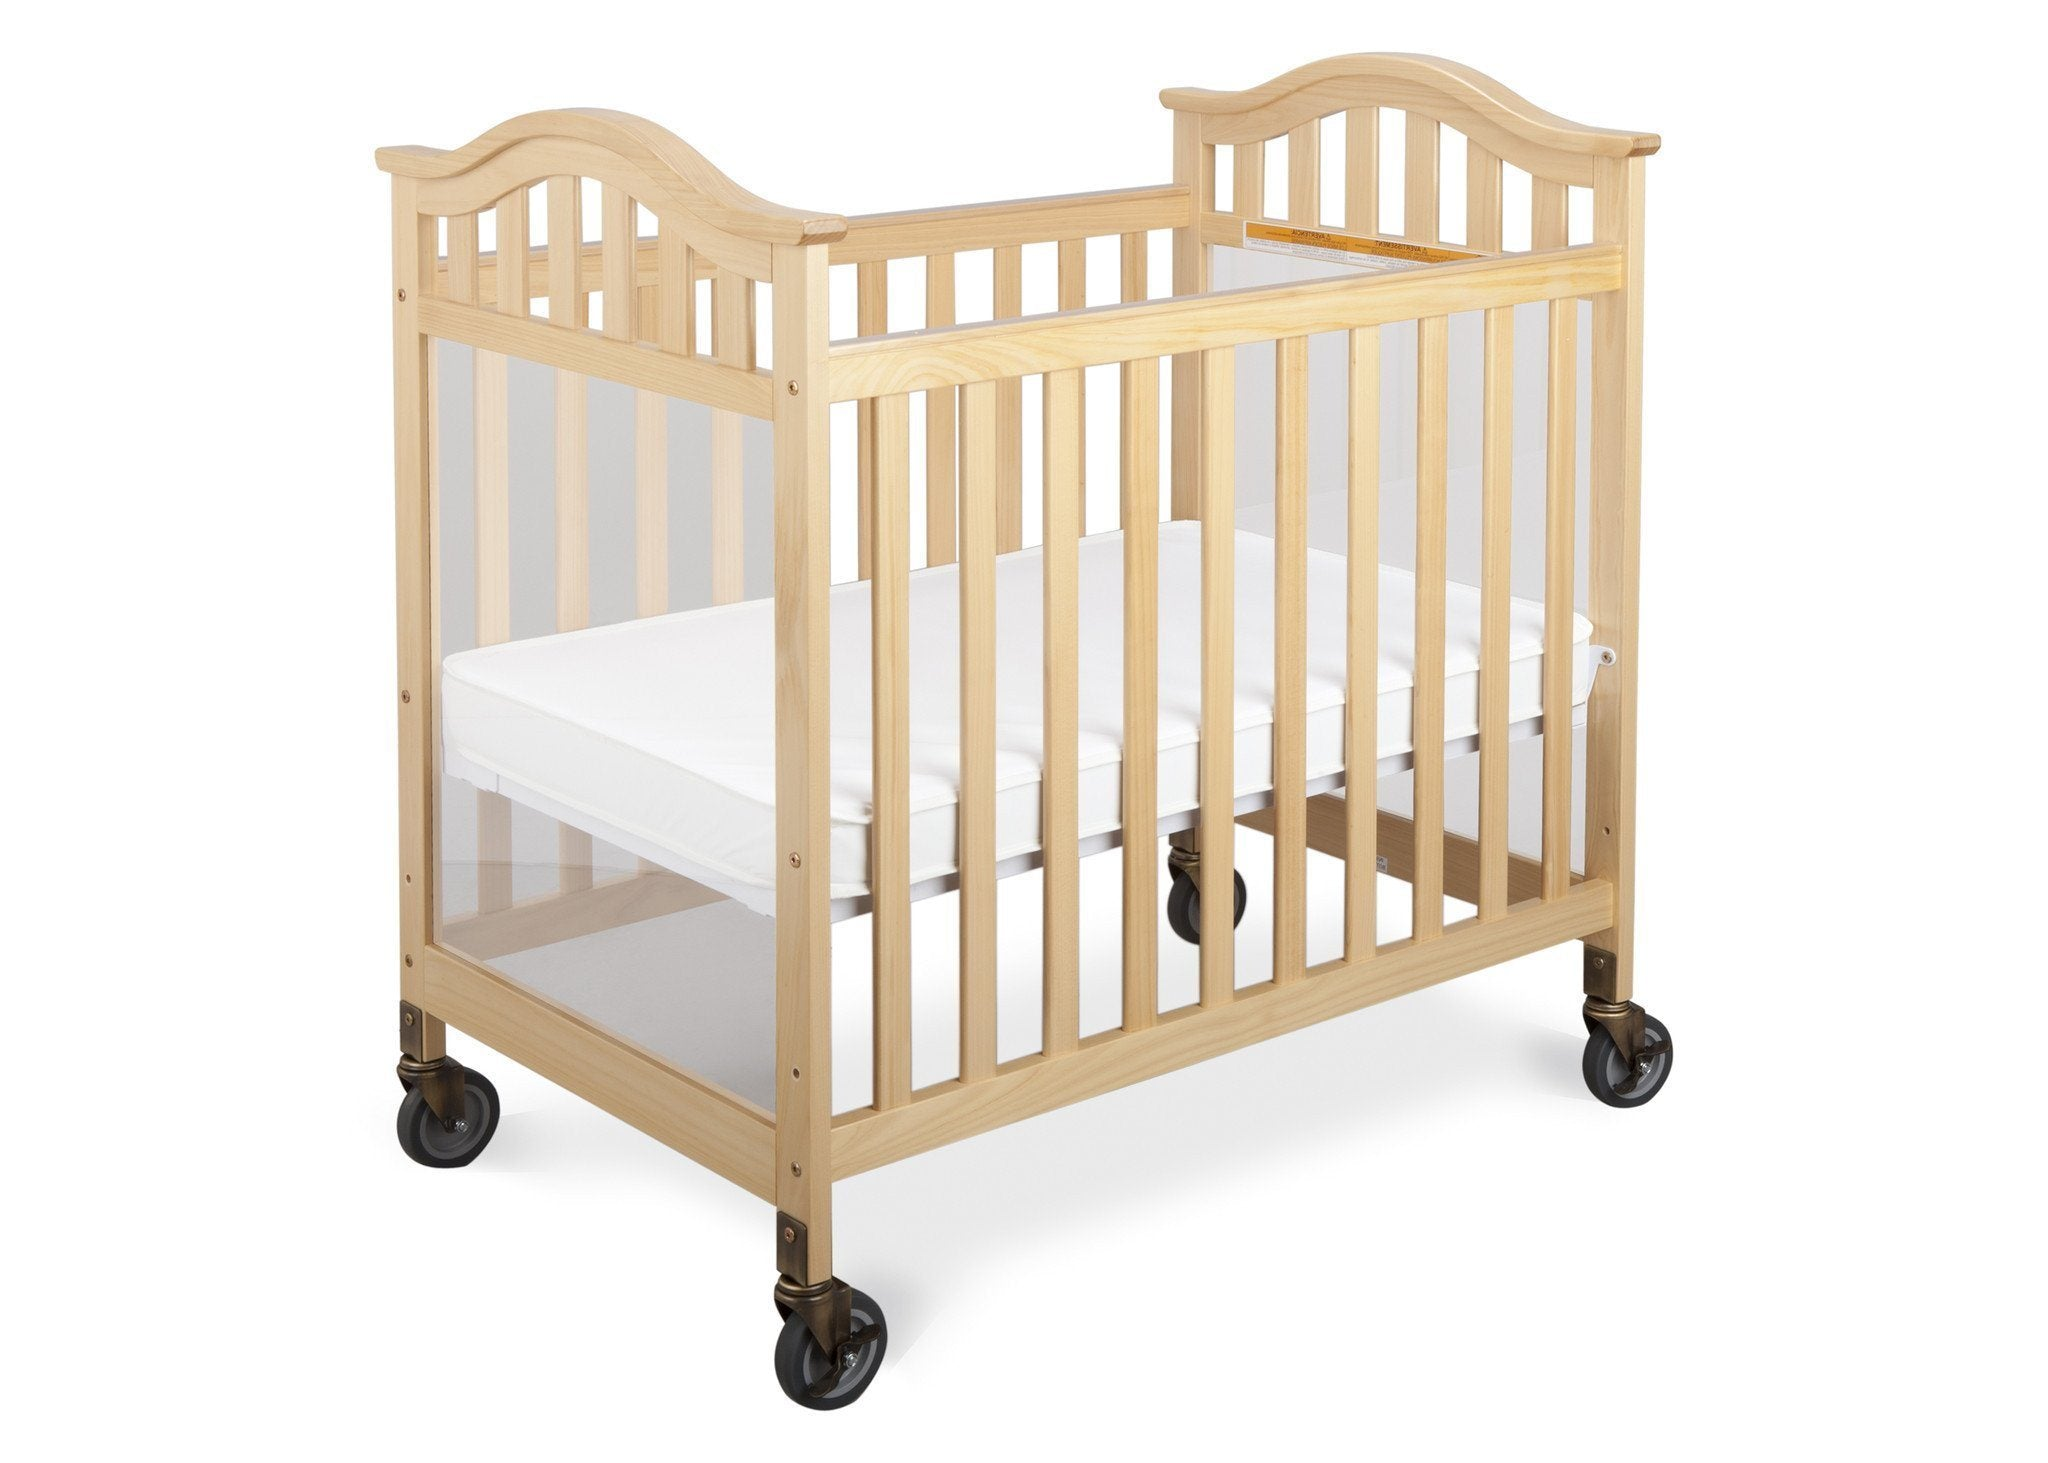 Simmons Kids Natural (260) Peyton Crib, Right Side View b2b